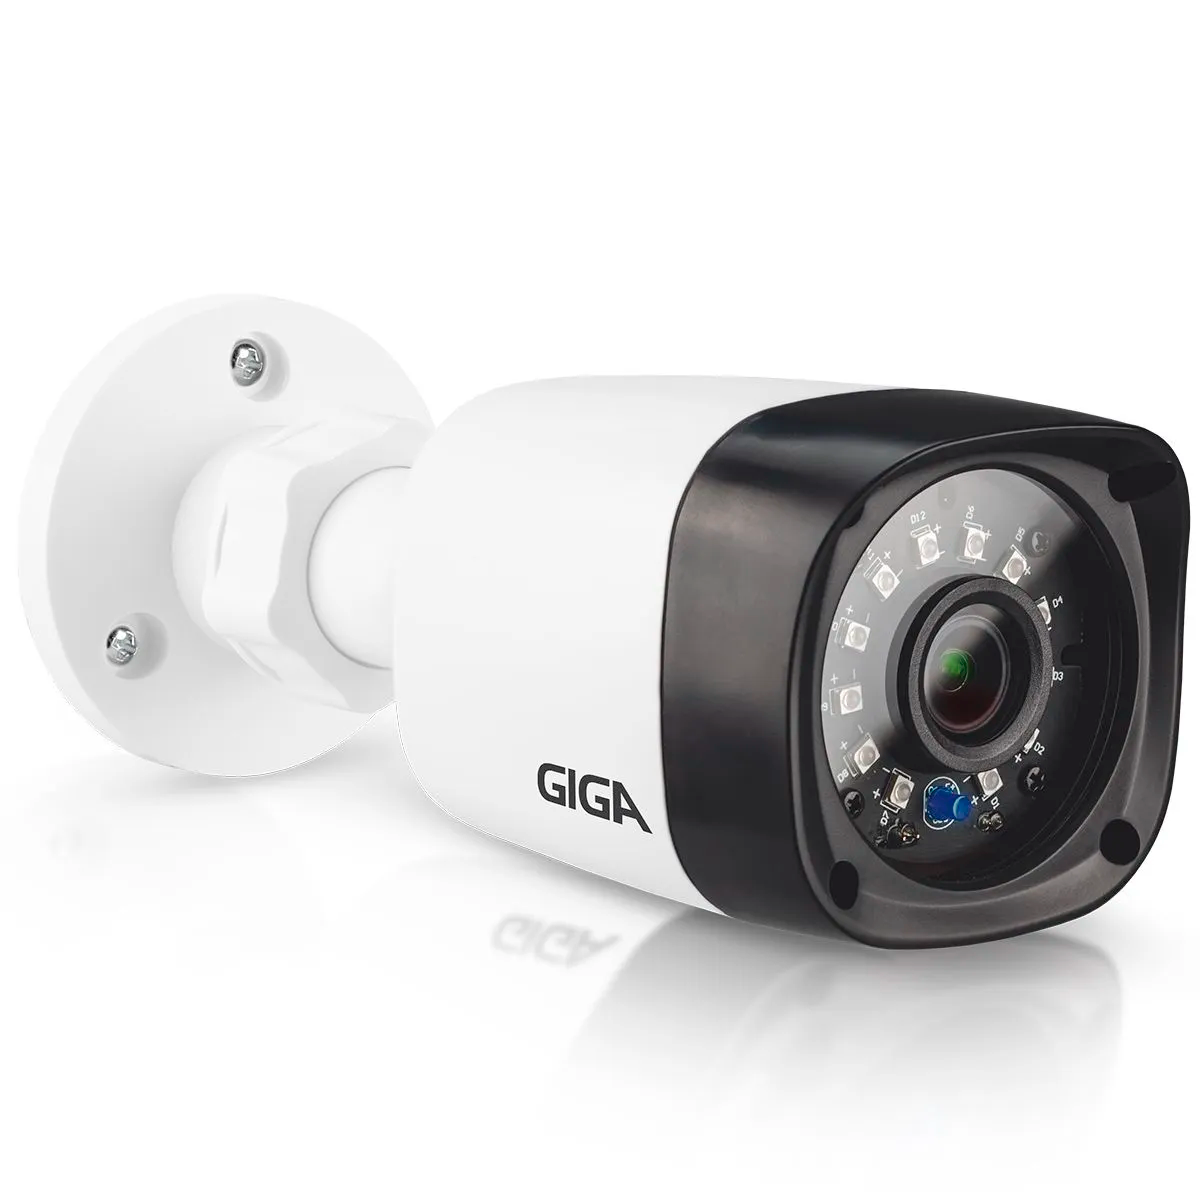 camera-full-hd-giga-security-gs0272-orion-2mp-30-metros-resolucao-escuro-03